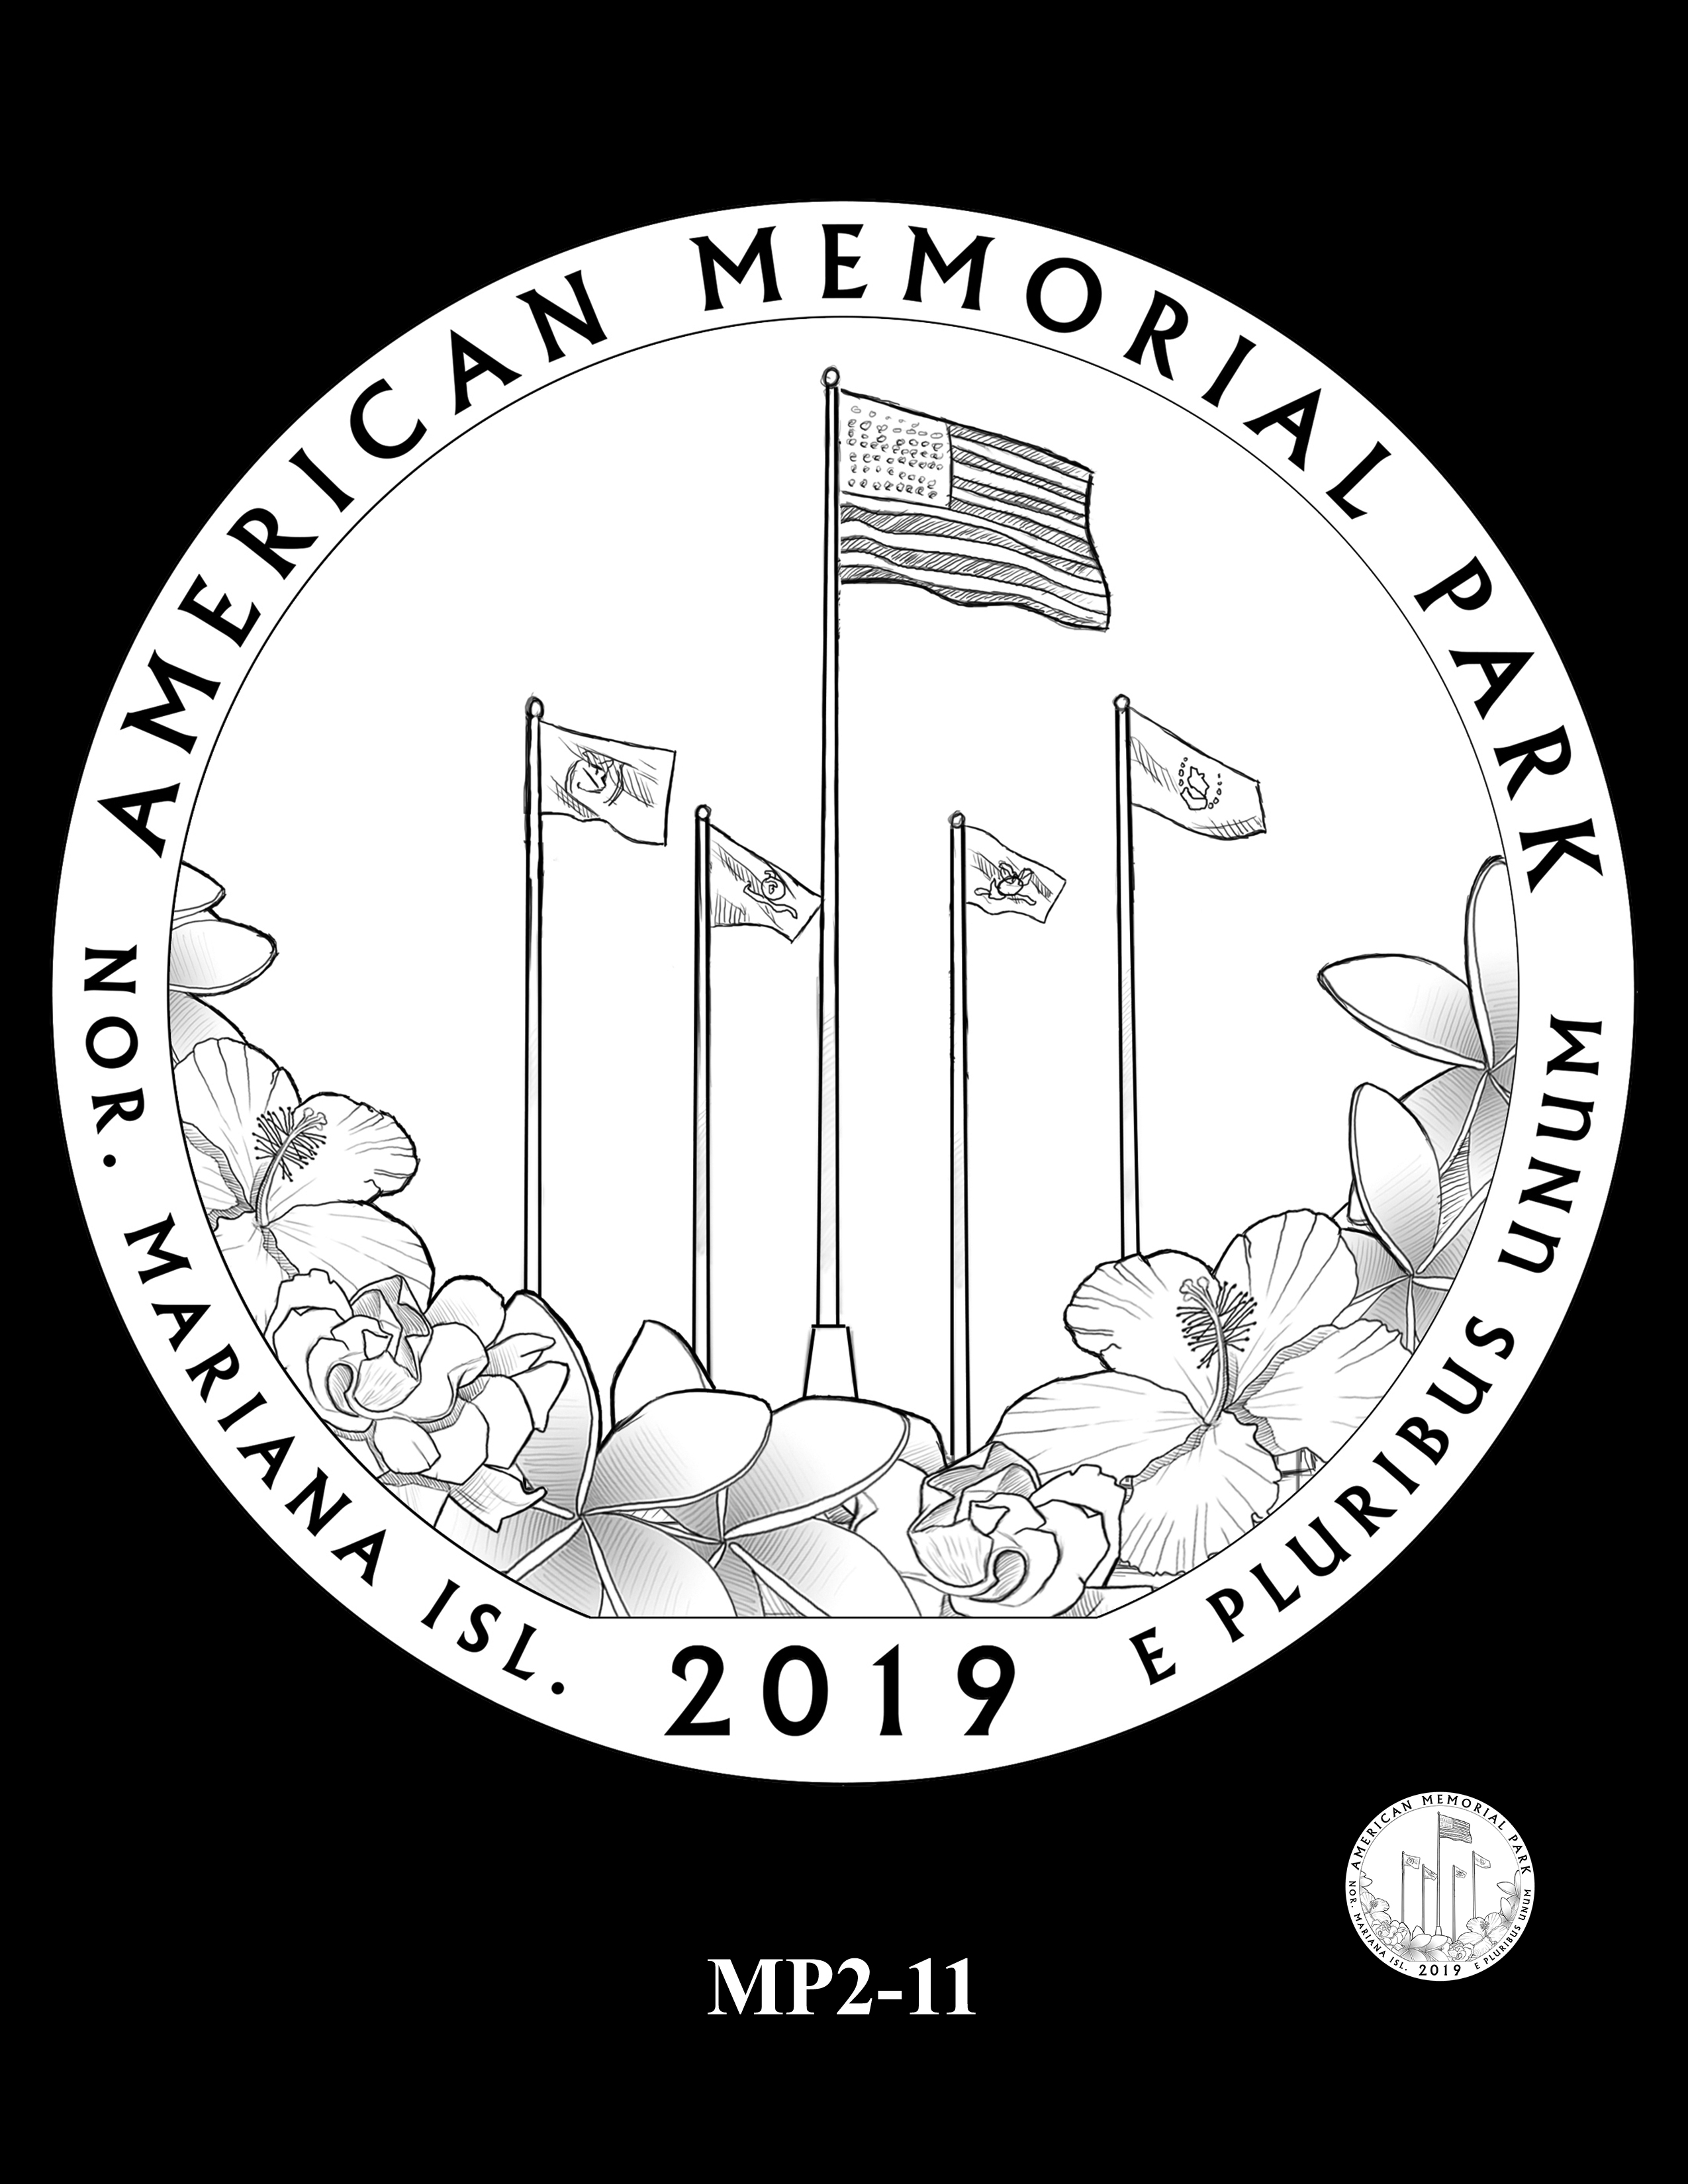 MP2-11 -- 2019 America the Beautiful Quarters® Program